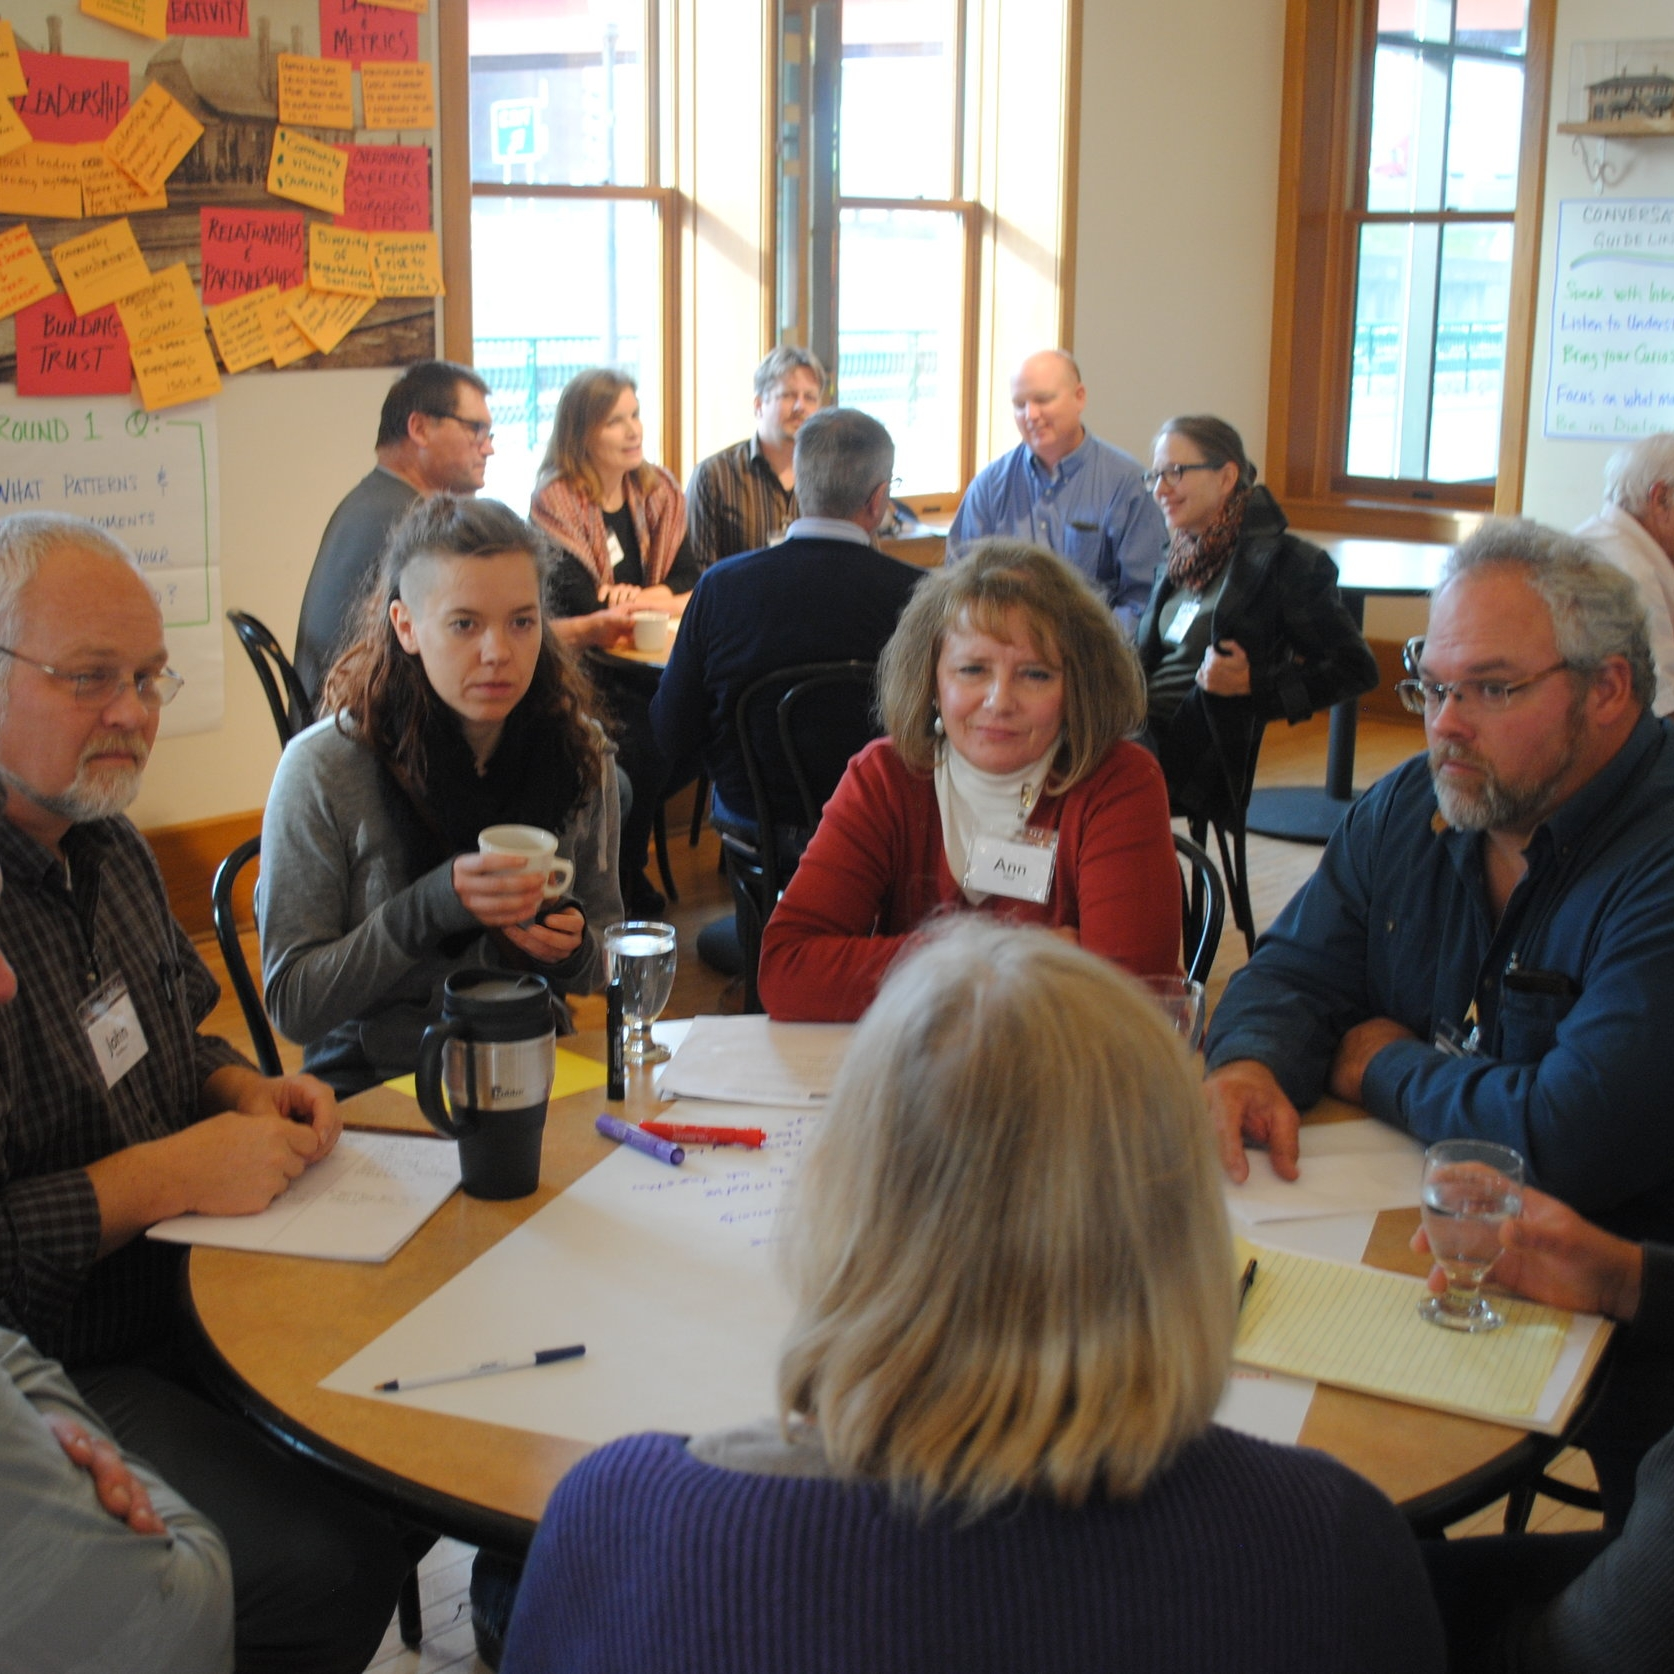 Watershed Leaders Network - Farmers from the 5 states in the Upper Mississippi River Basin gather in peer-to-peer learning, along with agricultural agency staff, watershed coordinators, ag retailers, recreational landowners and others who care about finding ways to protect water quality through better farming practices. We've hosted 4 residential gatherings to date with a growing list of requests to bring WLN to more watersheds across the region. Read more here.